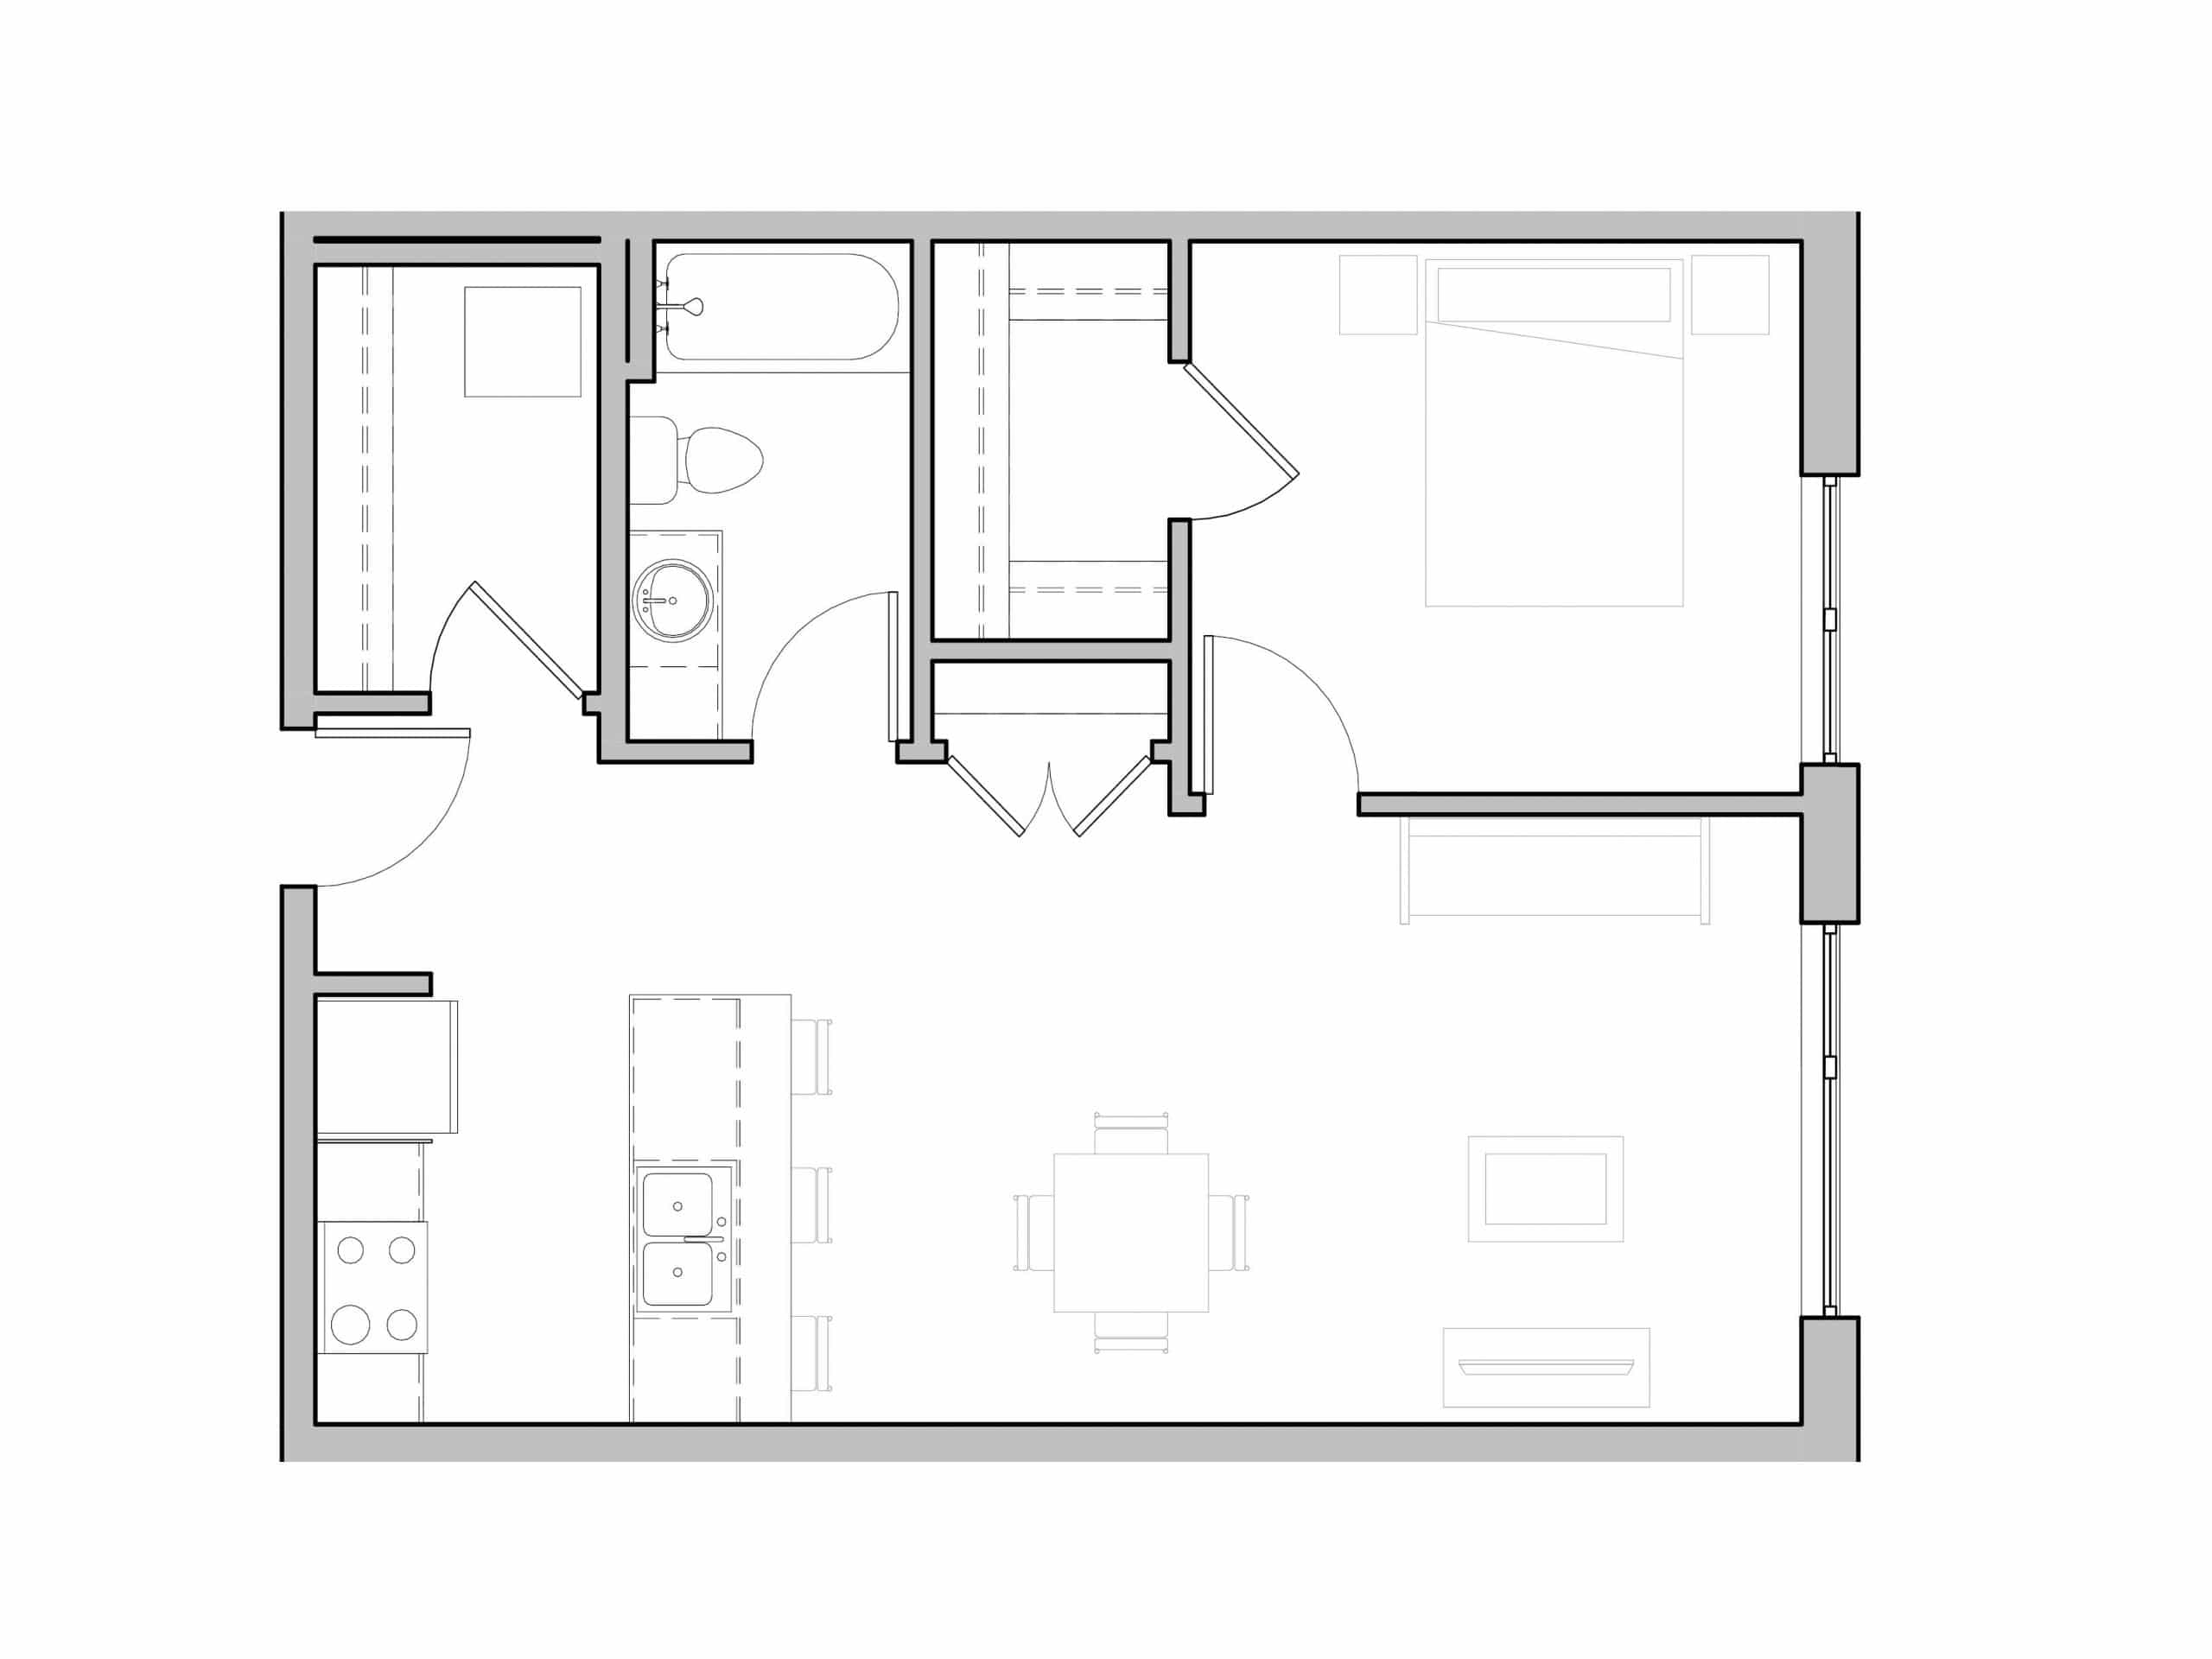 One Bath and One Bedroom open floorplan at Seattle's Ivy at Interbay.